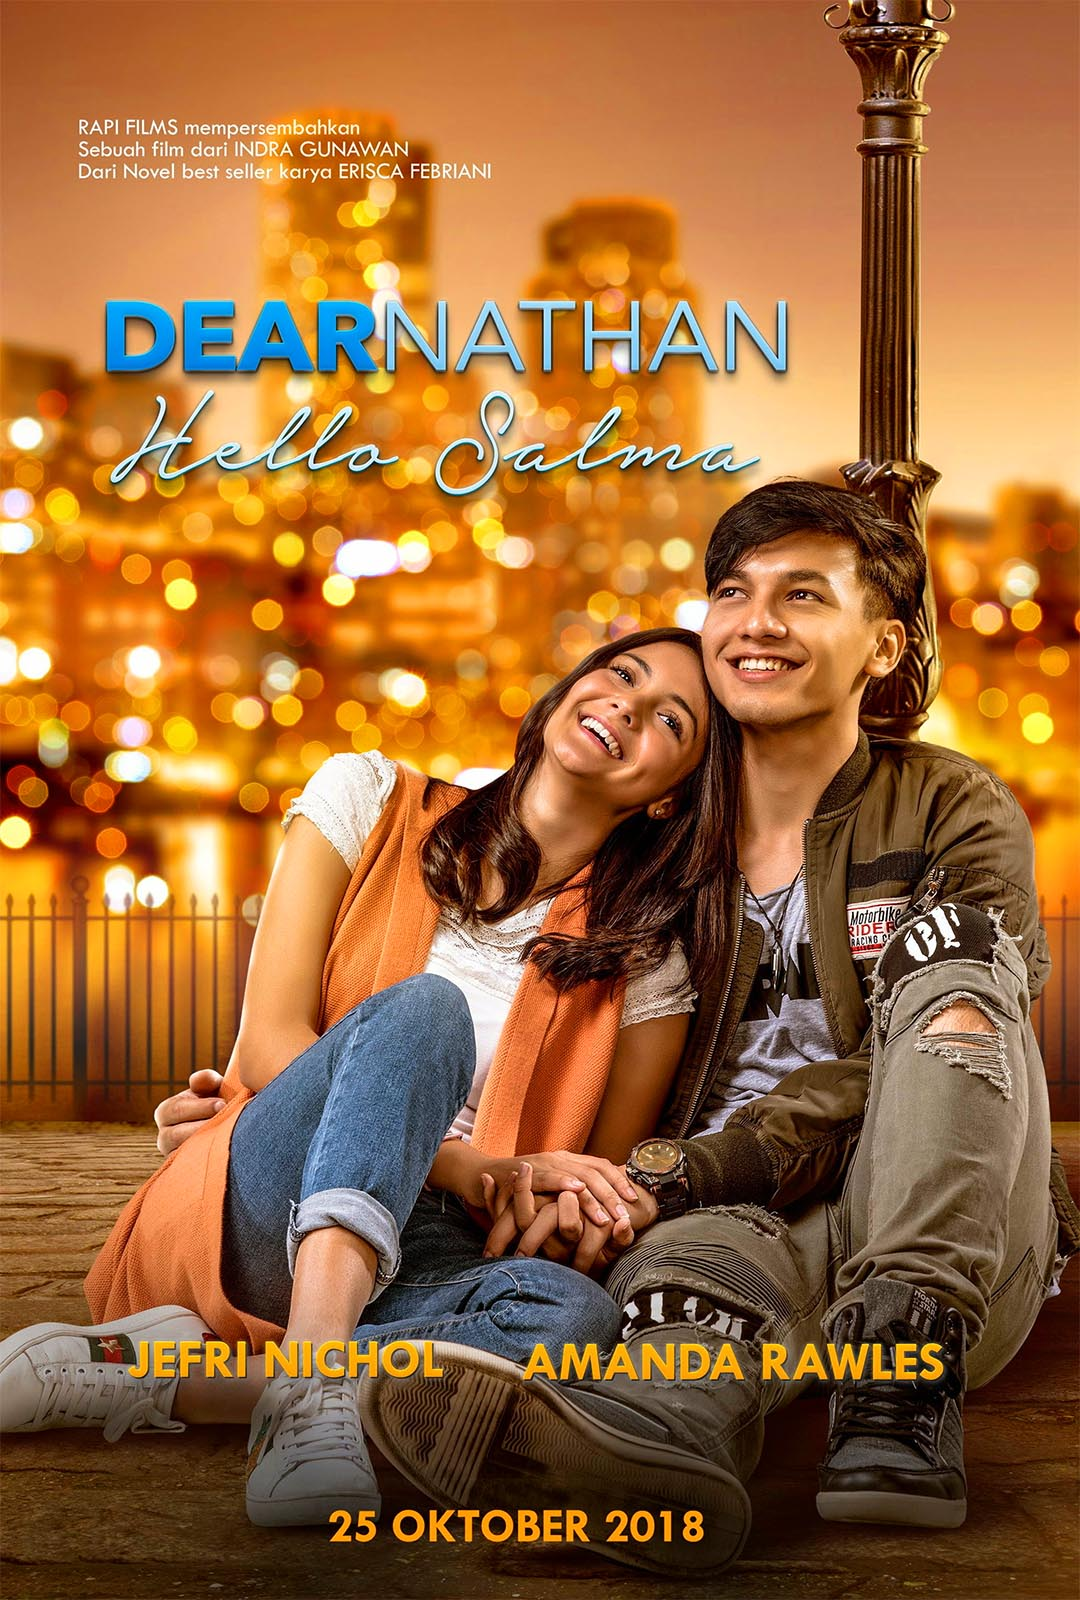 download film dear nathan mp4 360p